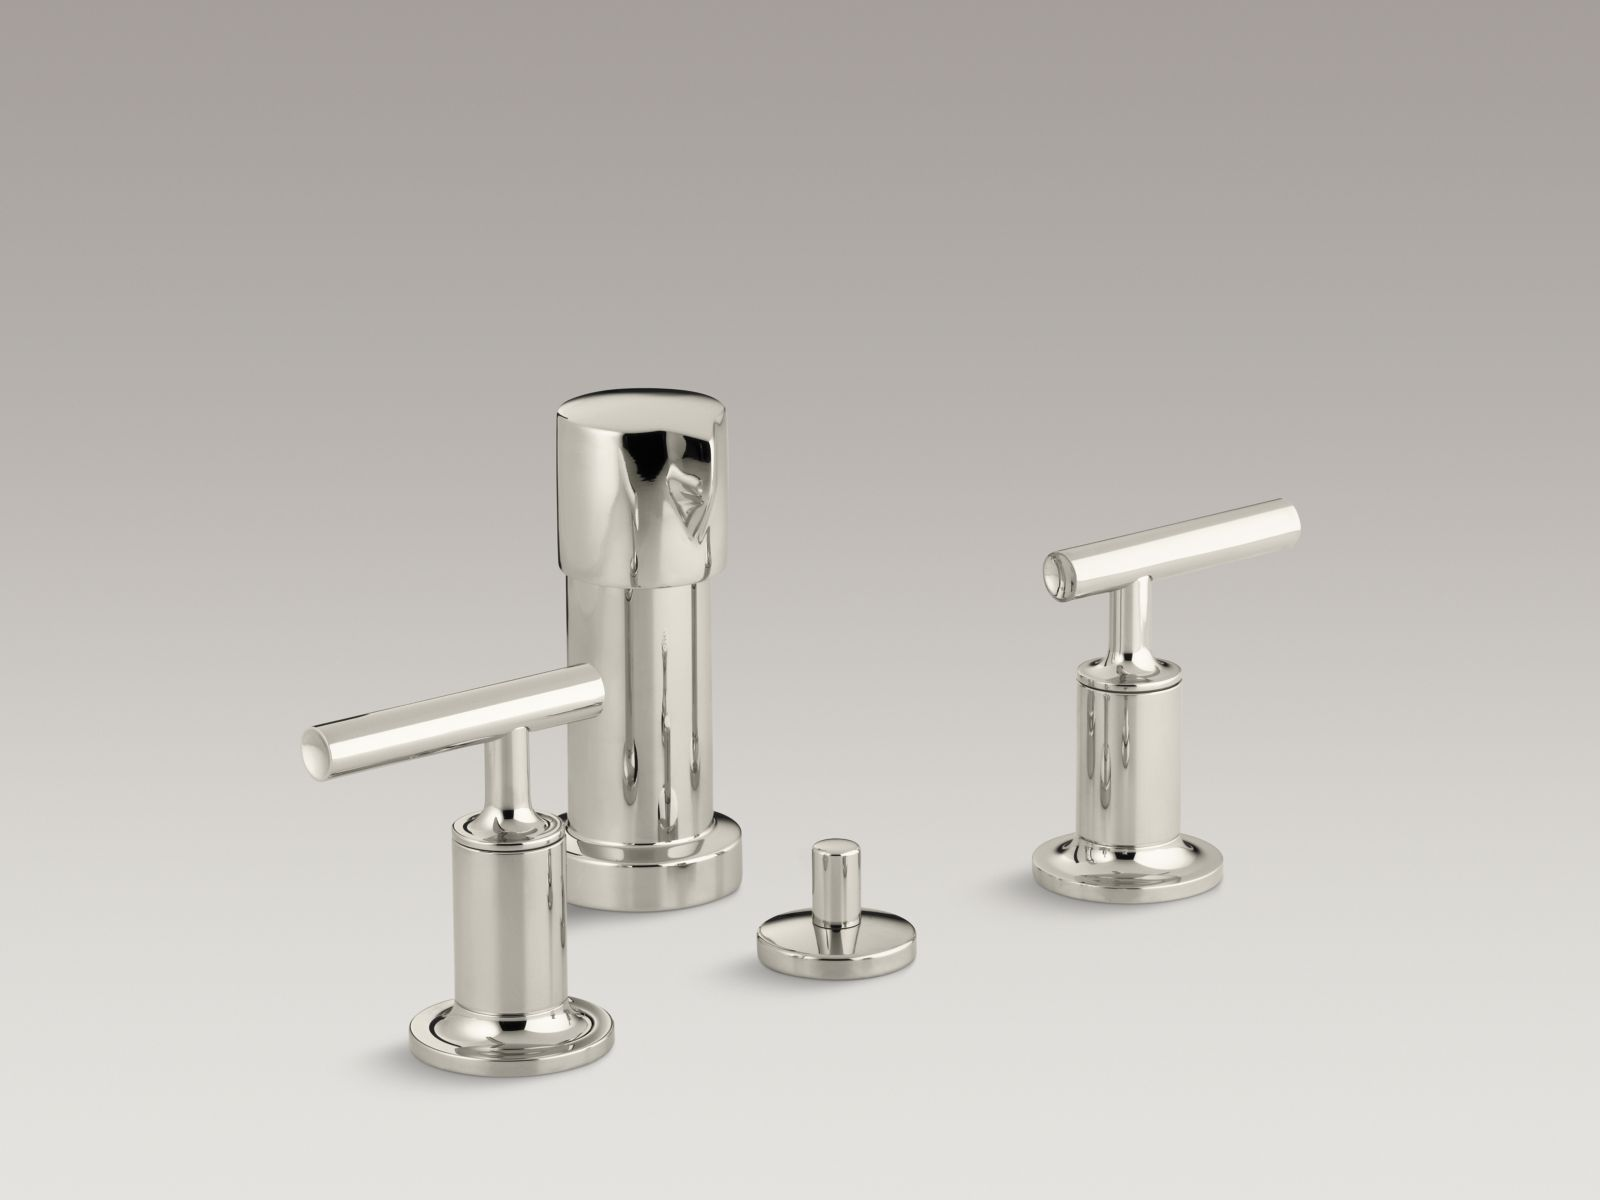 Kohler K-14431-4-SN Purist Bidet Faucet Vibrant Polished Nickel